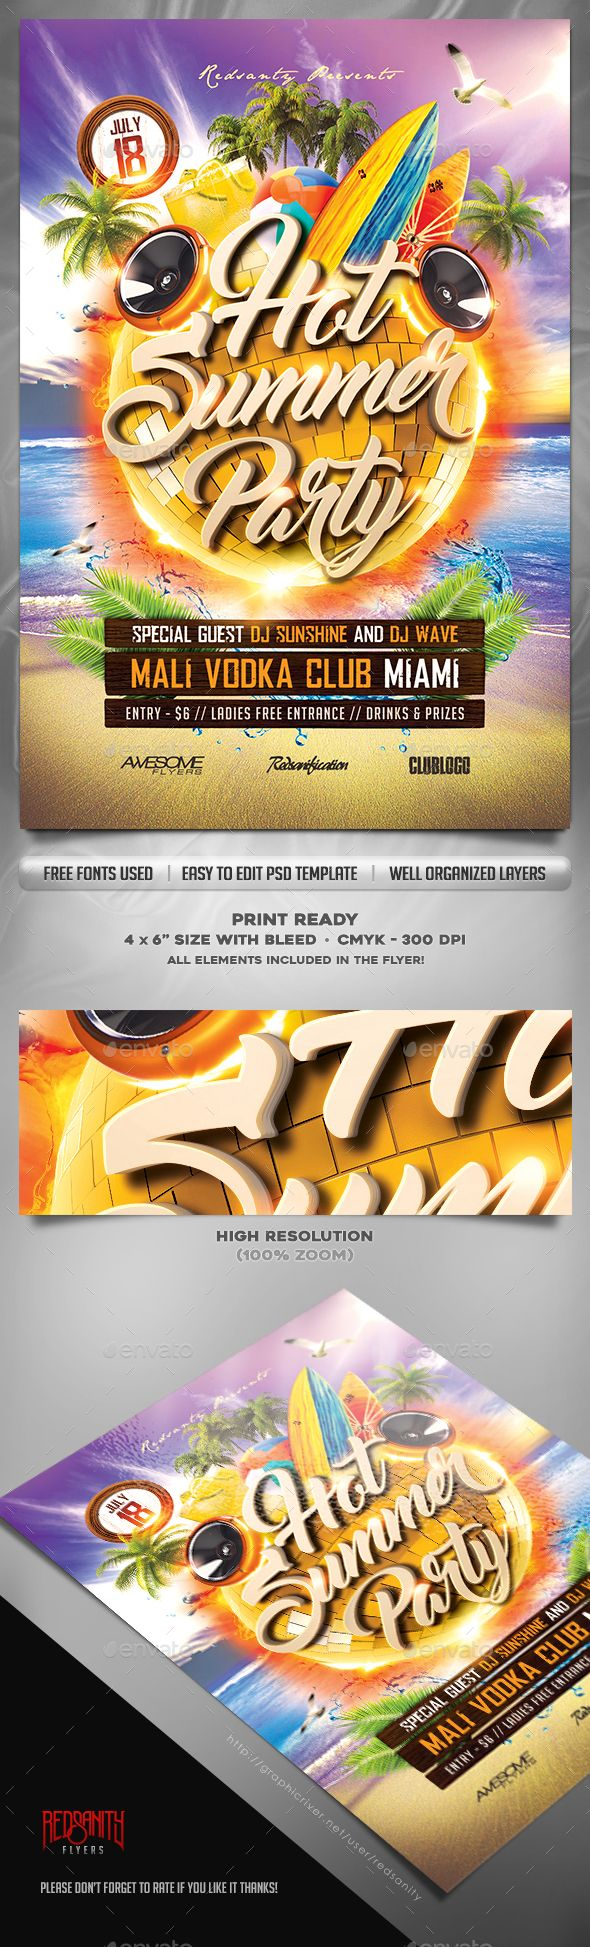 Hot Summer Party Flyer Template | Party events, Summer parties and ...